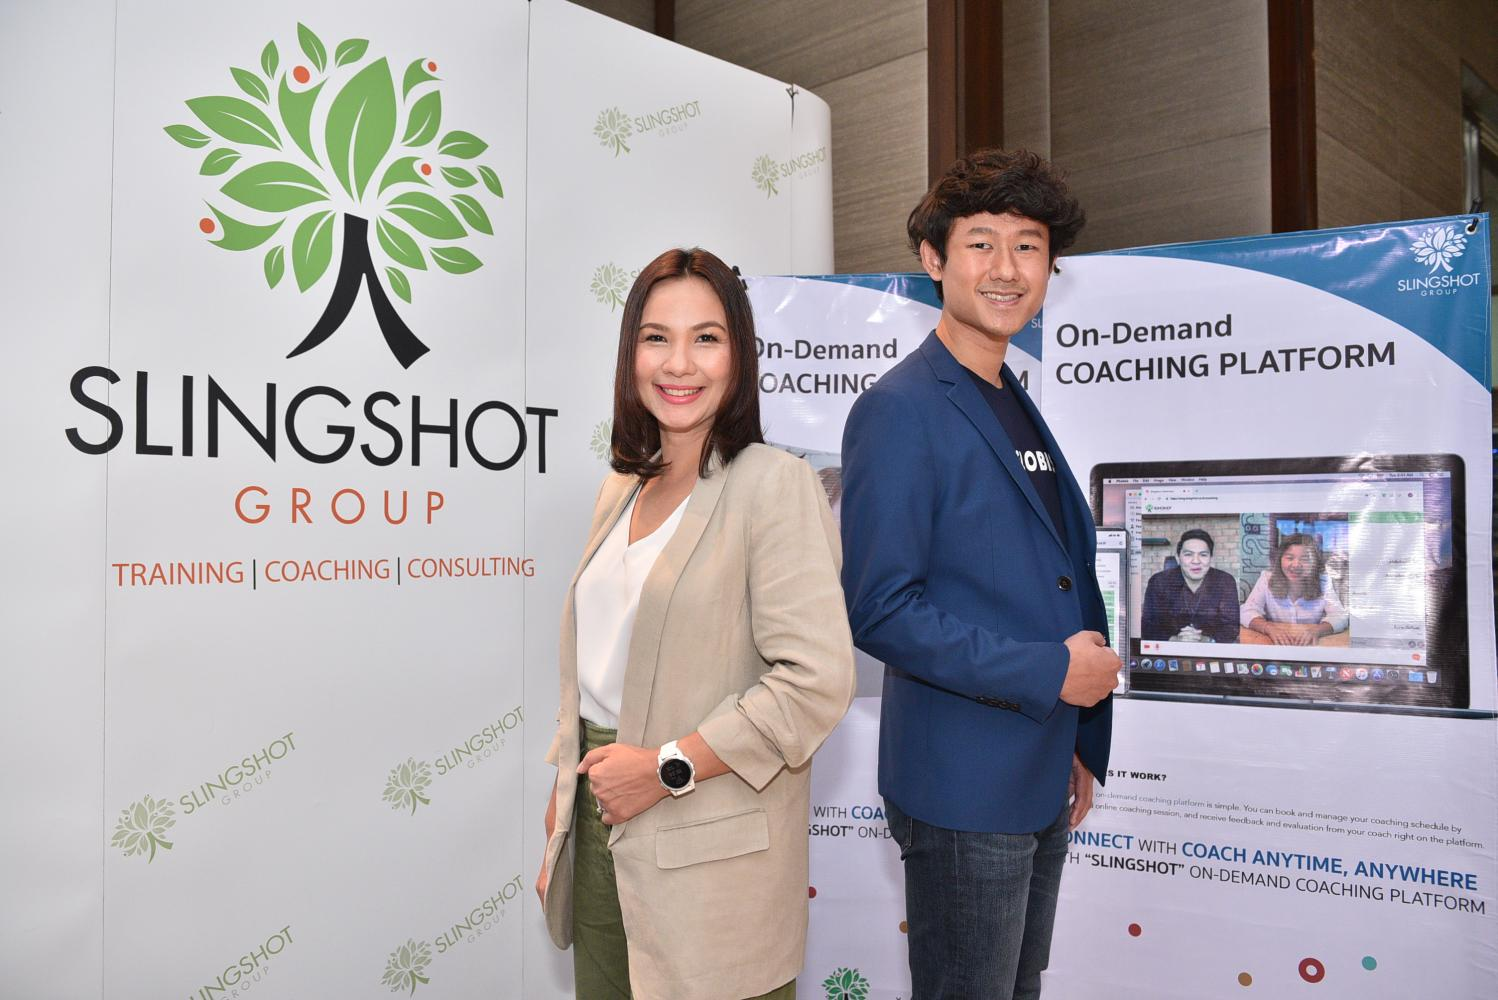 Ms Sutisophan (left) and Mr Takarn at the launch of OMG e-coaching on-demand platform.